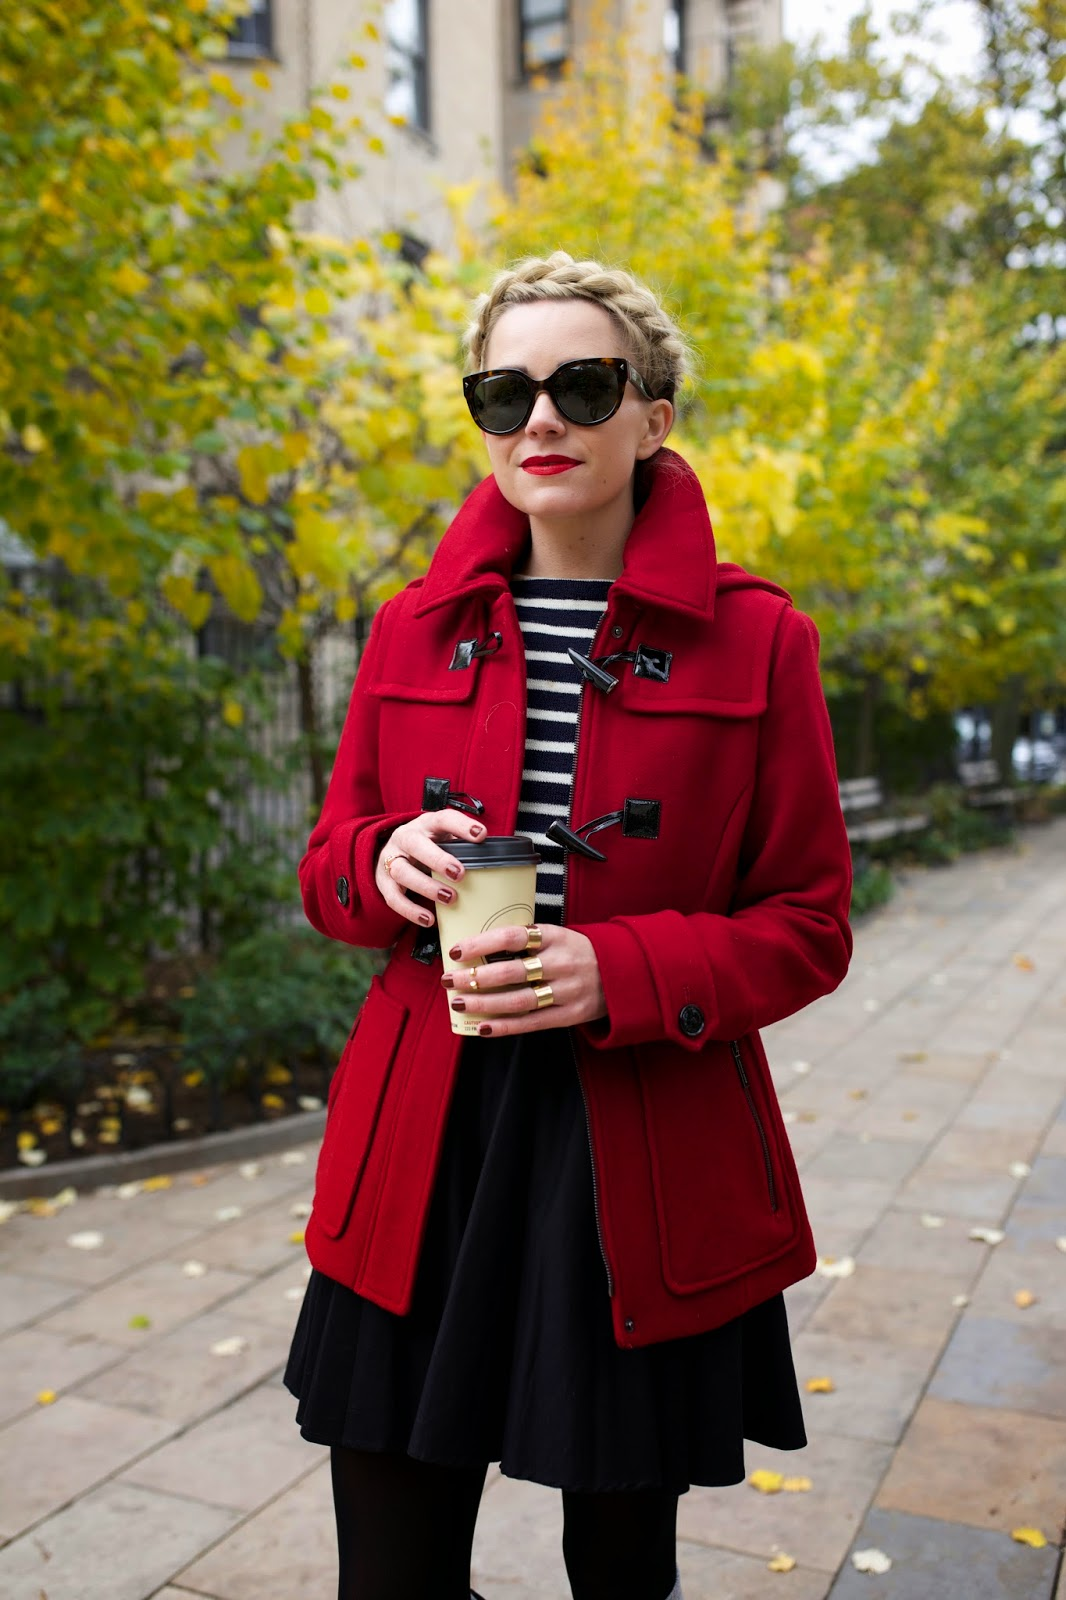 Lady wearing thigh length coat